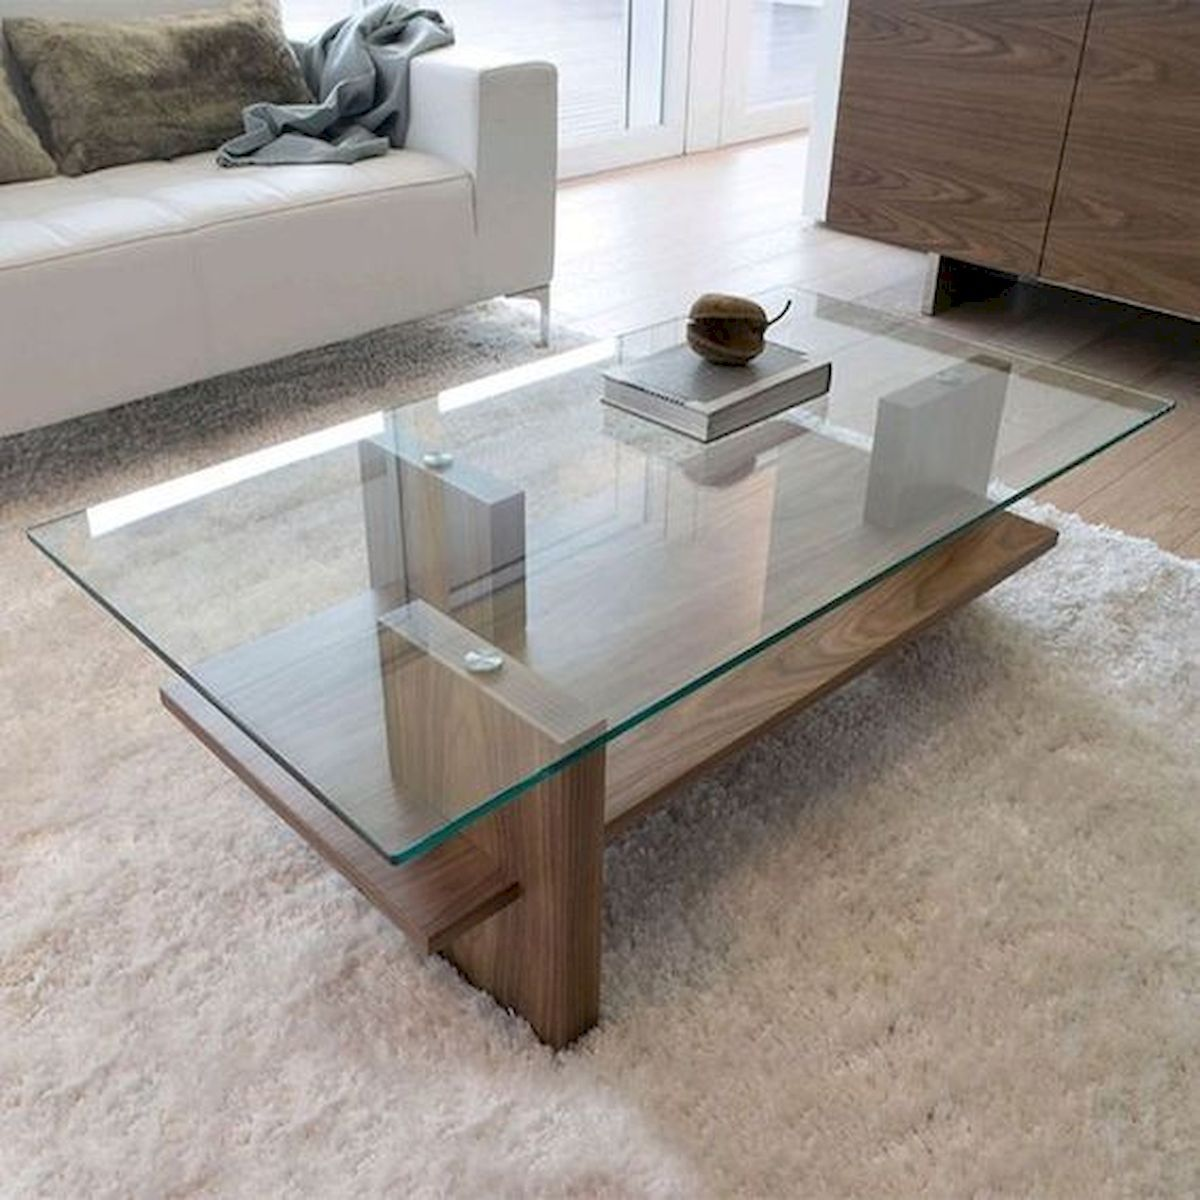 40 Awesome Modern Glass Coffee Table Design Ideas For Your Living Room Modern Glass Coffee Table Living Room Table Coffee Table Living room glass table